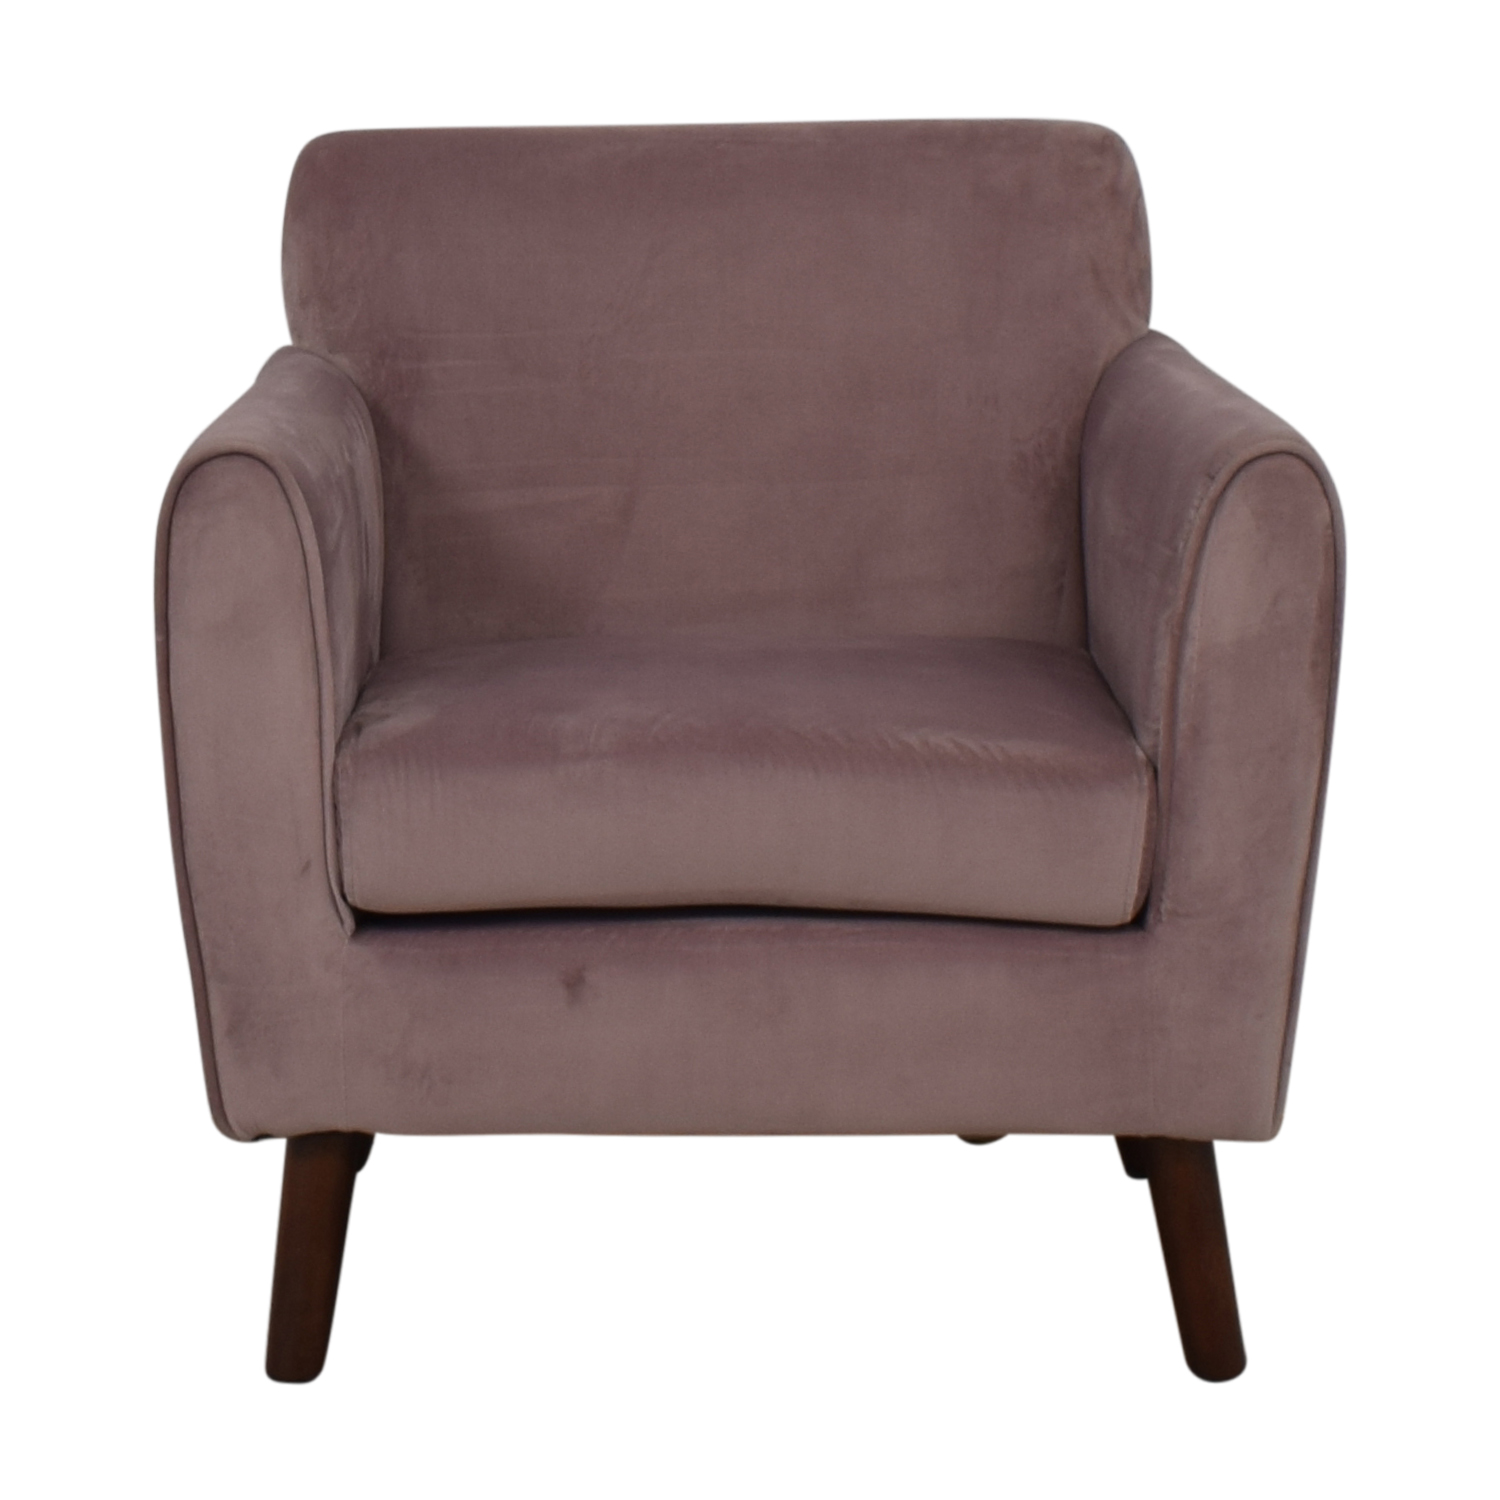 shop Brylane Home Purple Accent Chair Brylane Home Chairs